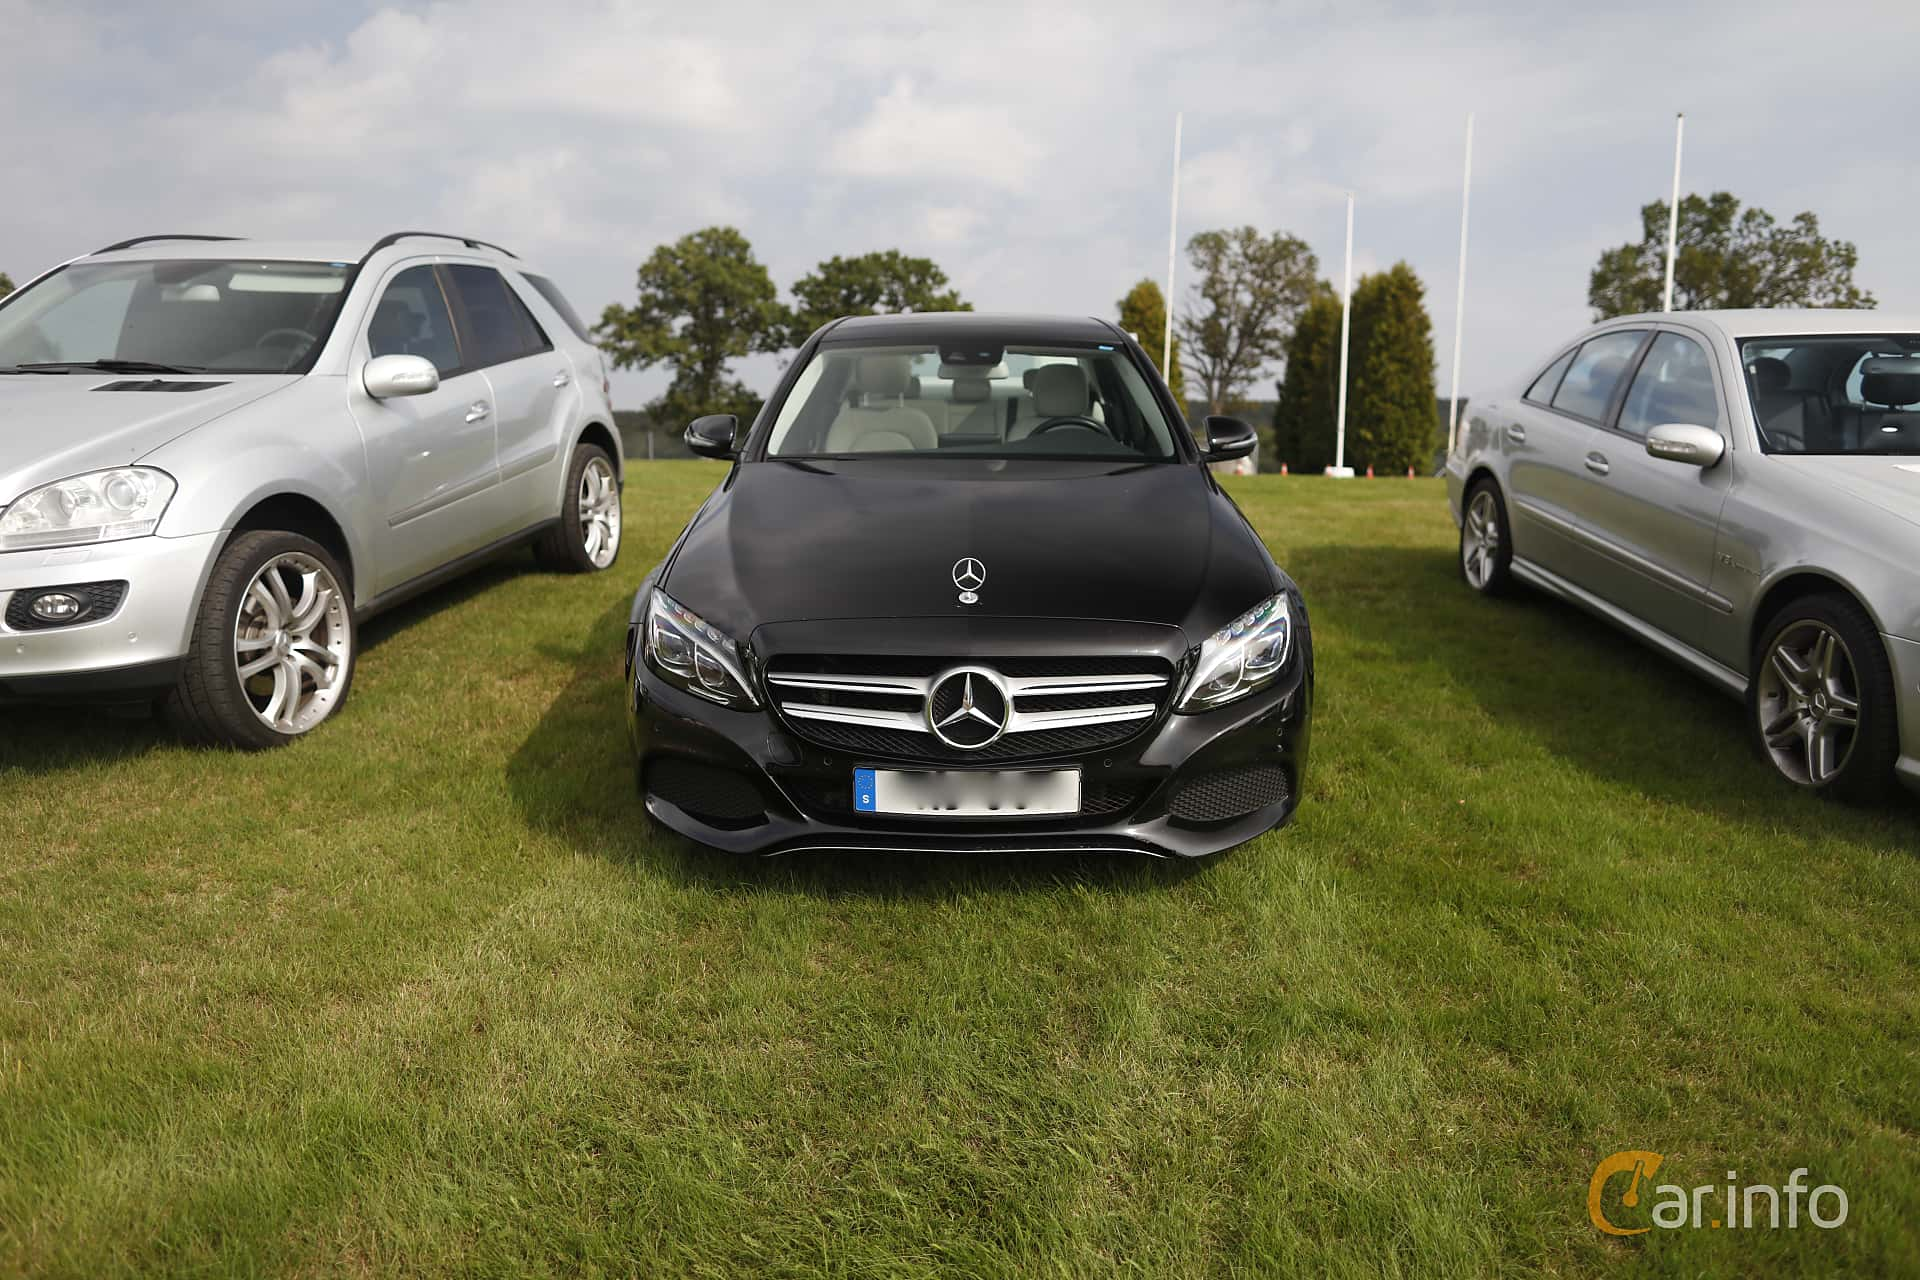 Front  of Mercedes-Benz C 350 e  7G-Tronic Plus, 279ps, 2017 at Autoropa Racing day Knutstorp 2019